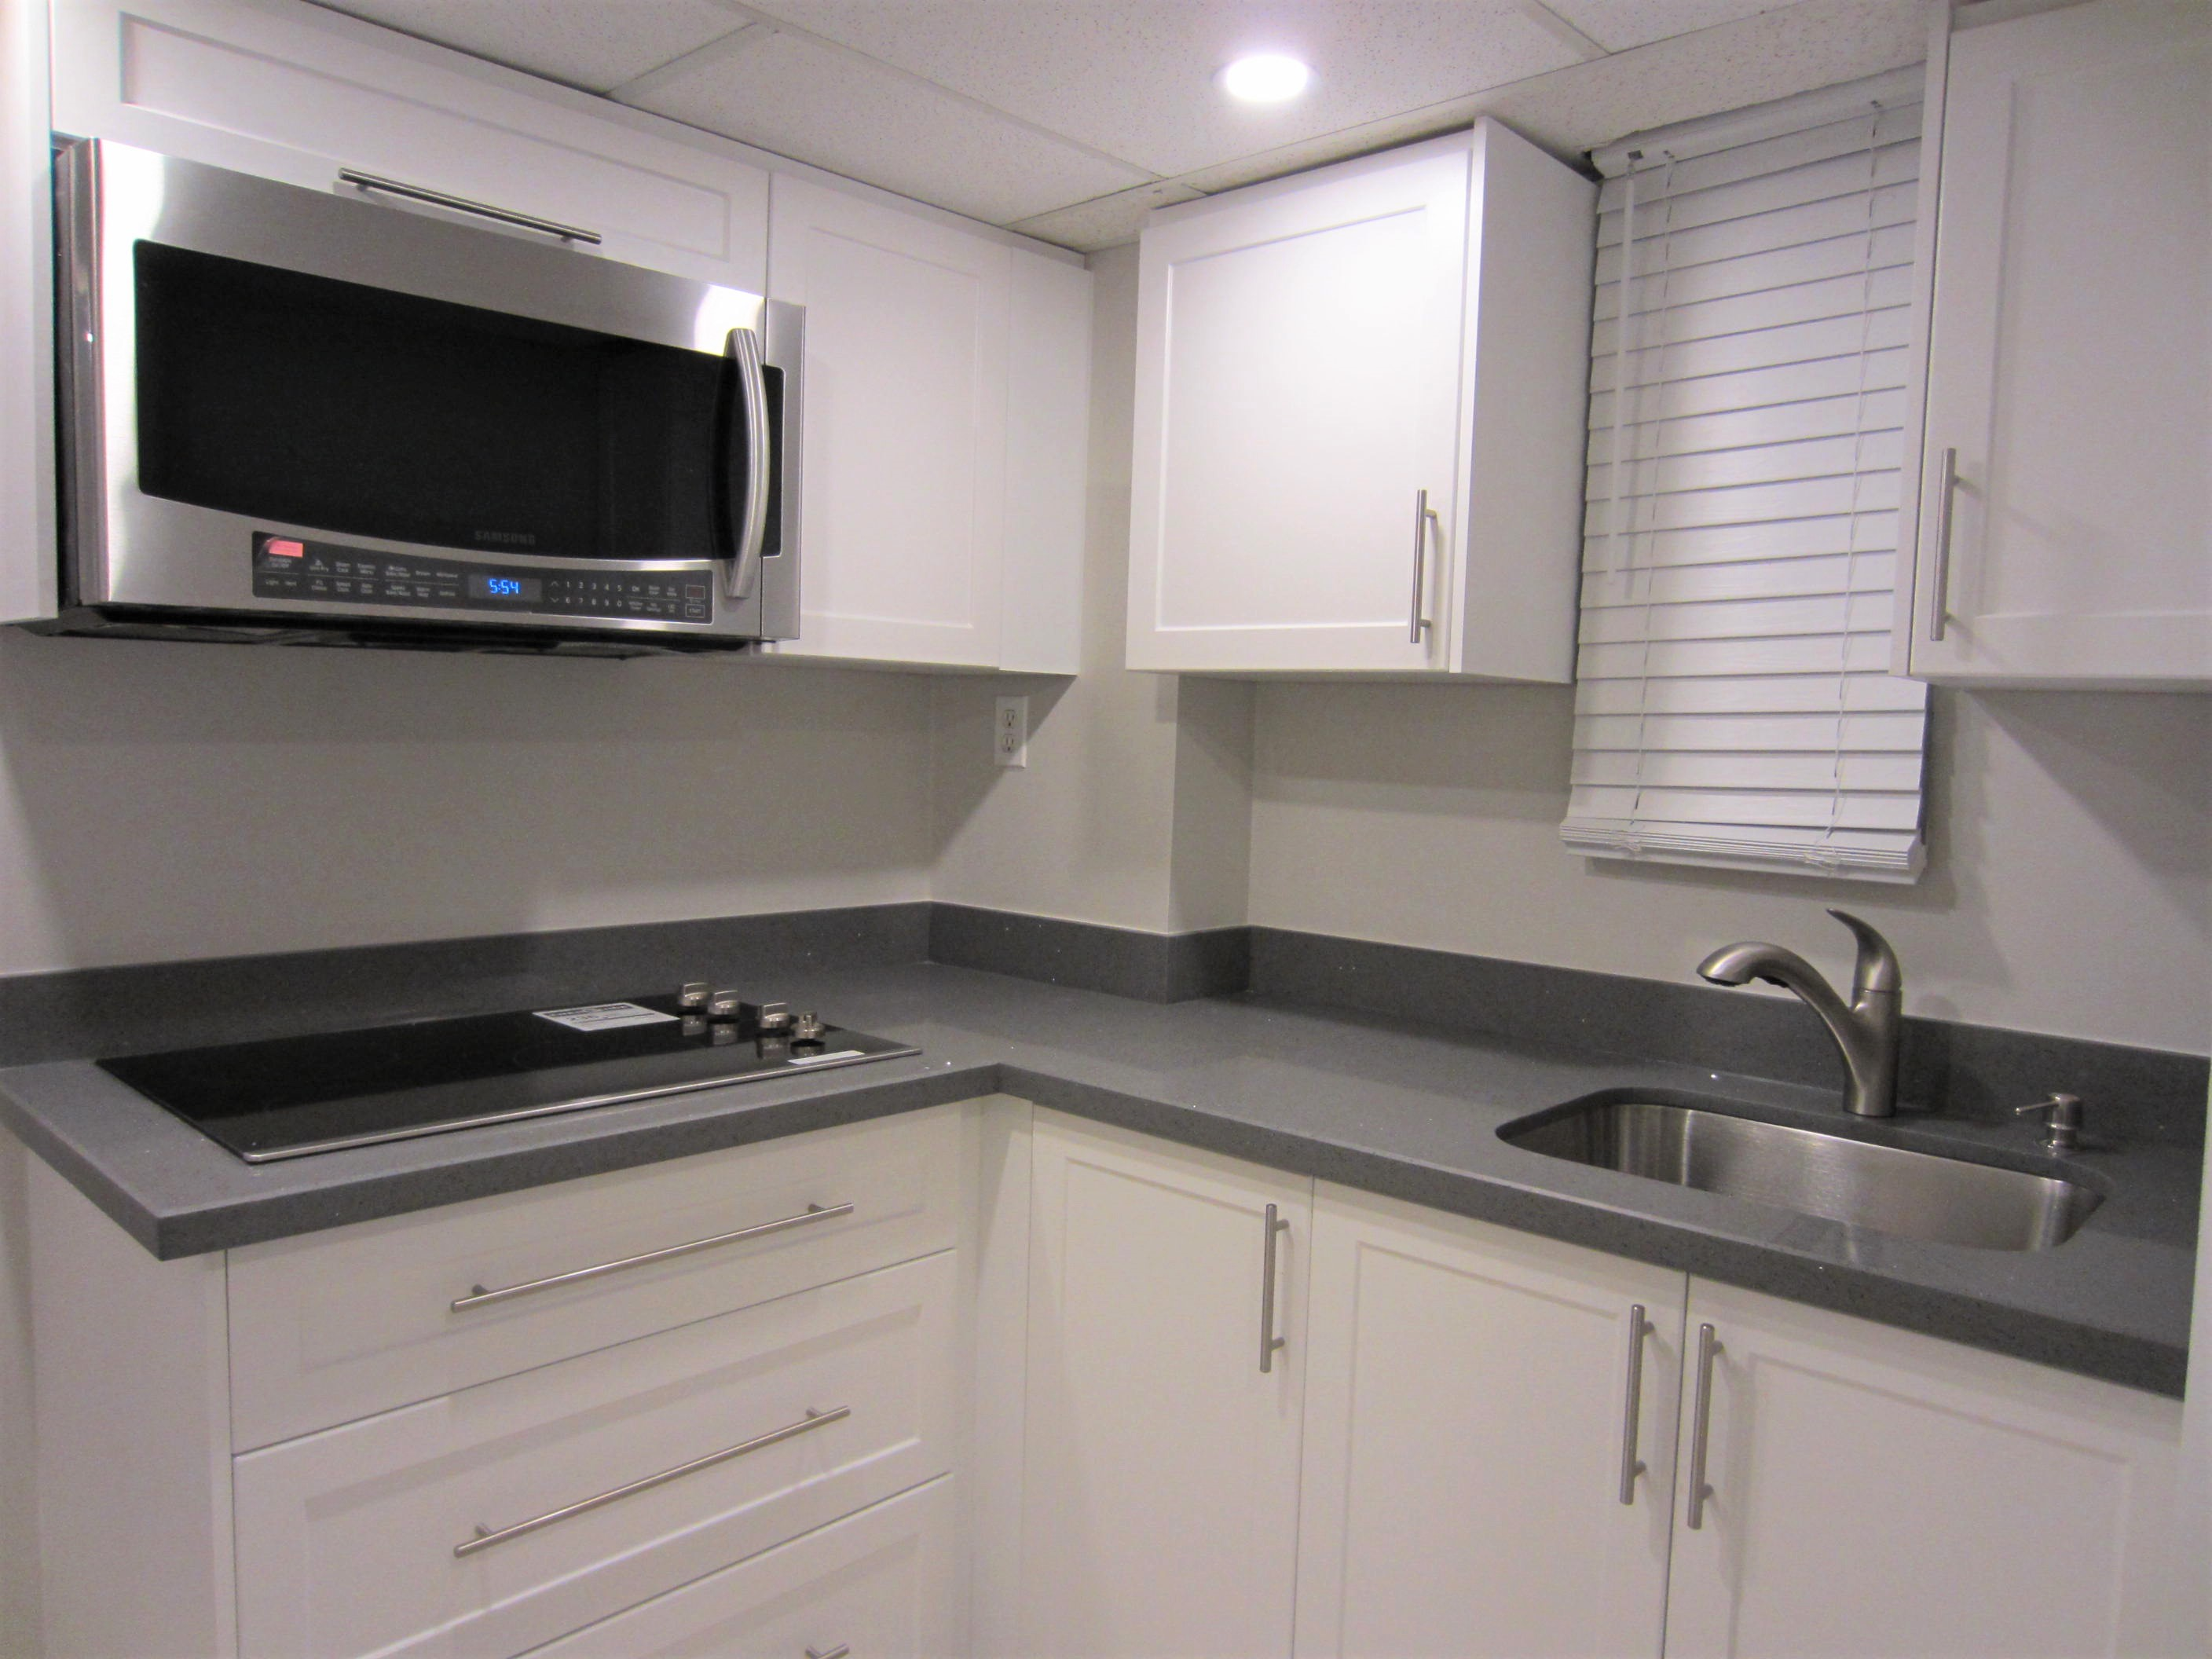 Renovated 2 bdrm apt in Richmond Hill: $1600